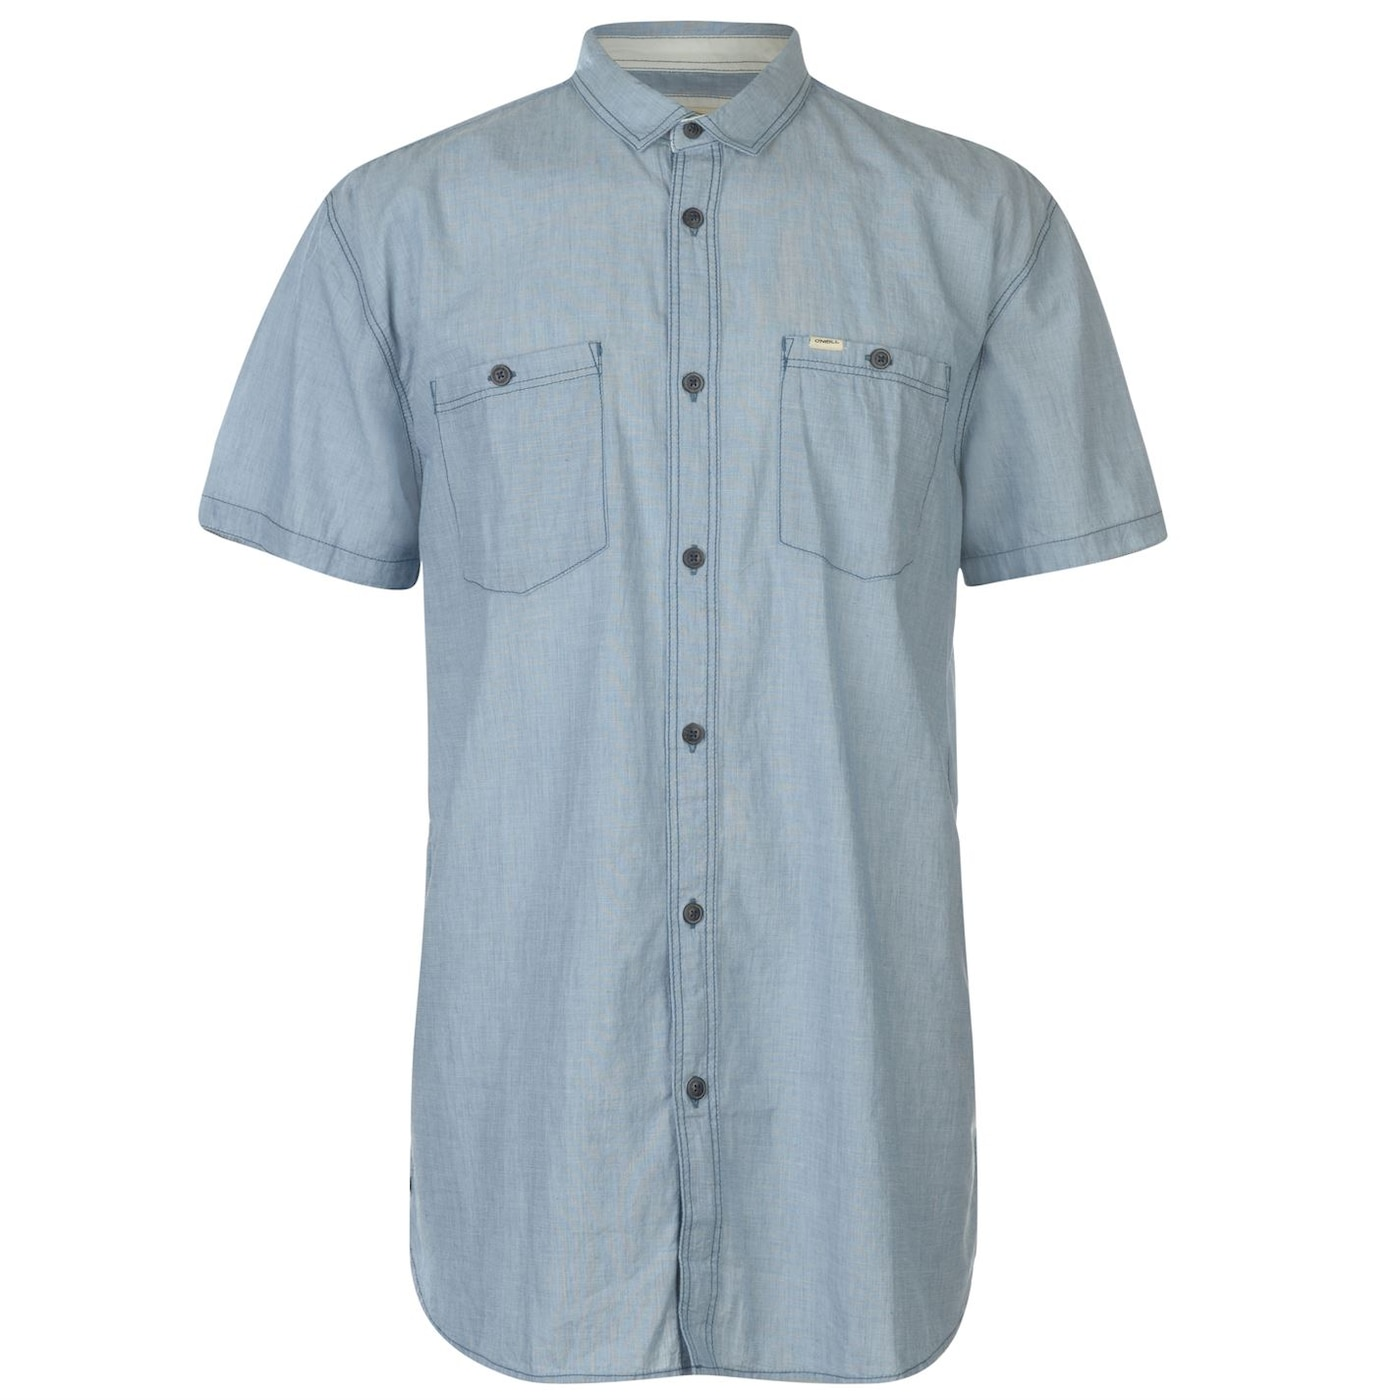 ONeill Short Sleeve Shirt Mens